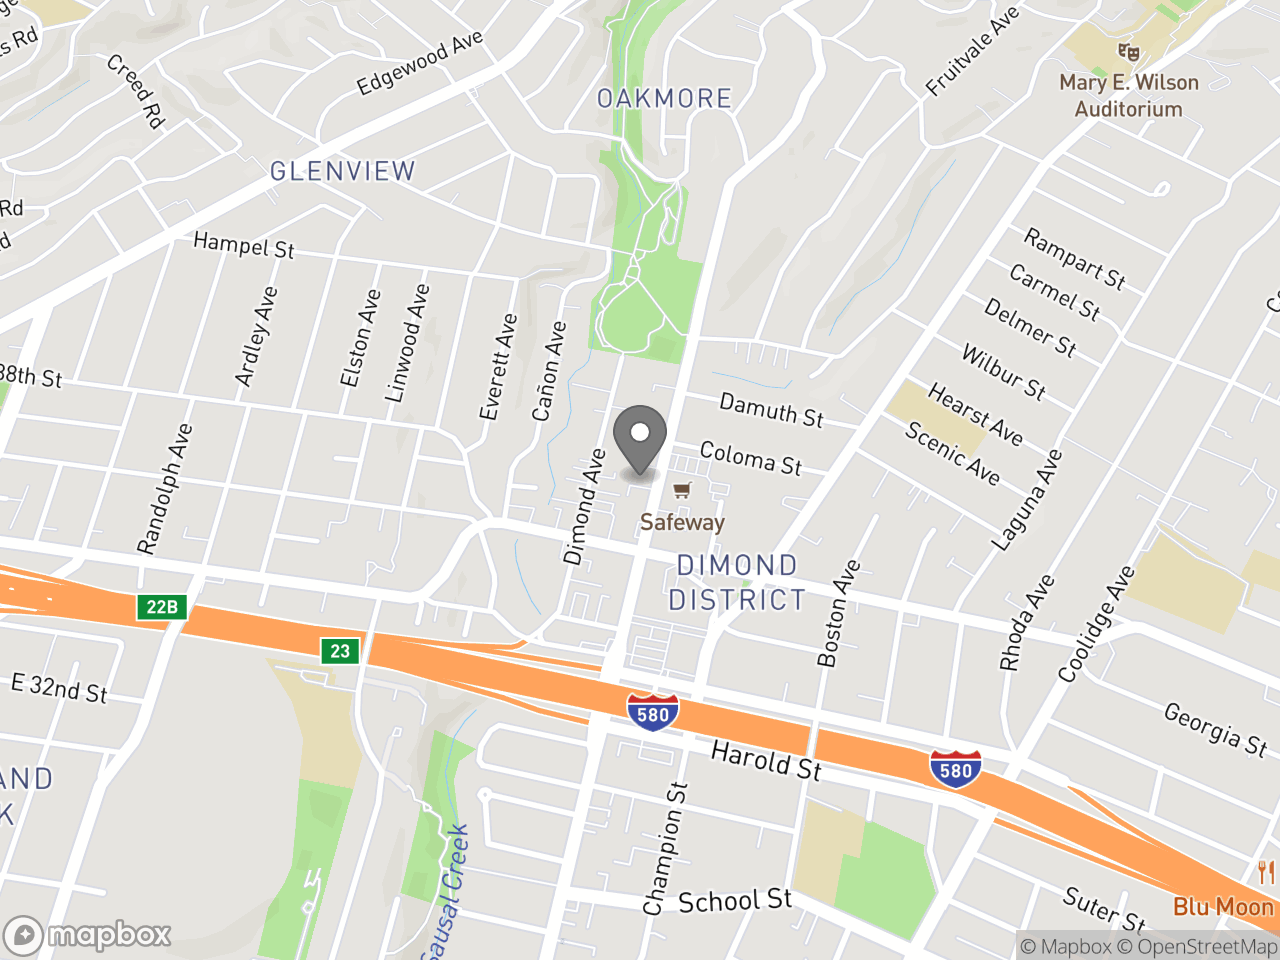 Map location for Equity Indicators Community Briefing # 4, located at 3565 Fruitvale Ave in Oakland, CA 94602